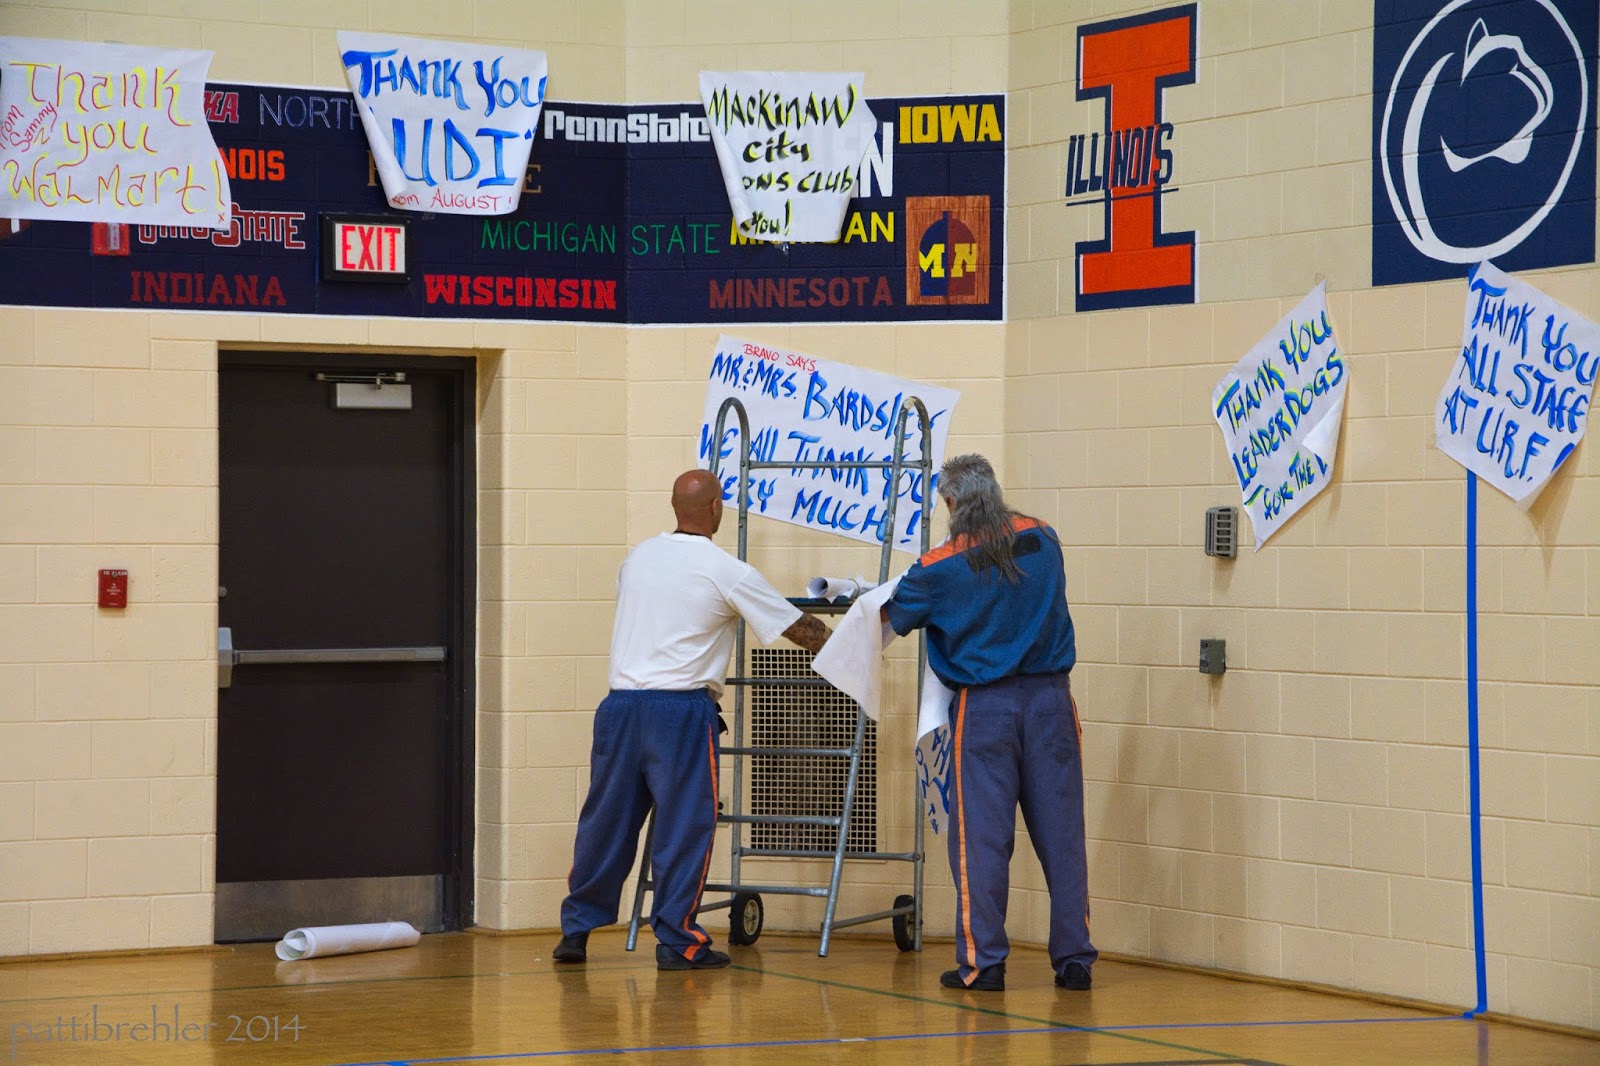 Two men, wearing blue prison uniforms (the man on the left is wearing a white t-shirt, are facing a gym wall. They are using a metal rolling ladder to tape posters on the wall.